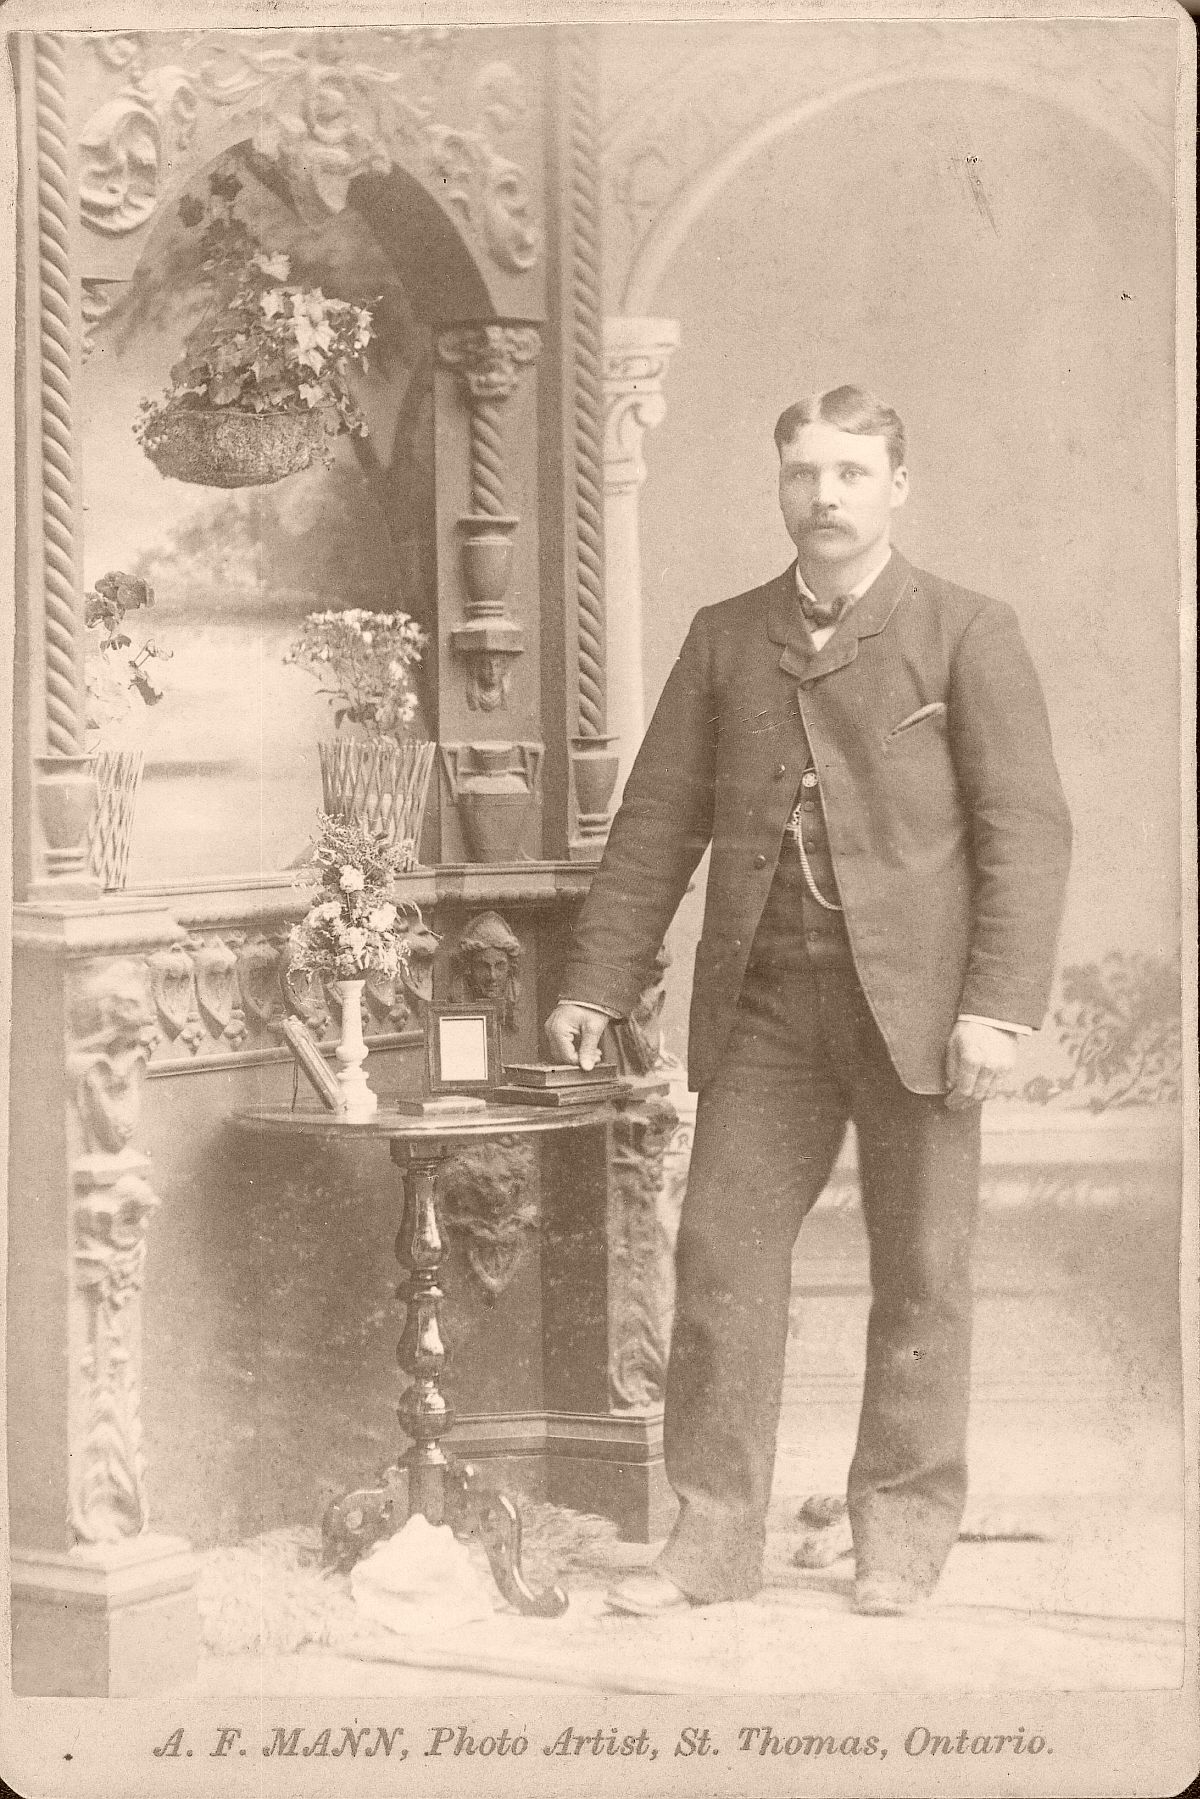 cabinet-cards-1870s-to-1880s-vintage-19th-century-victorian-era-14